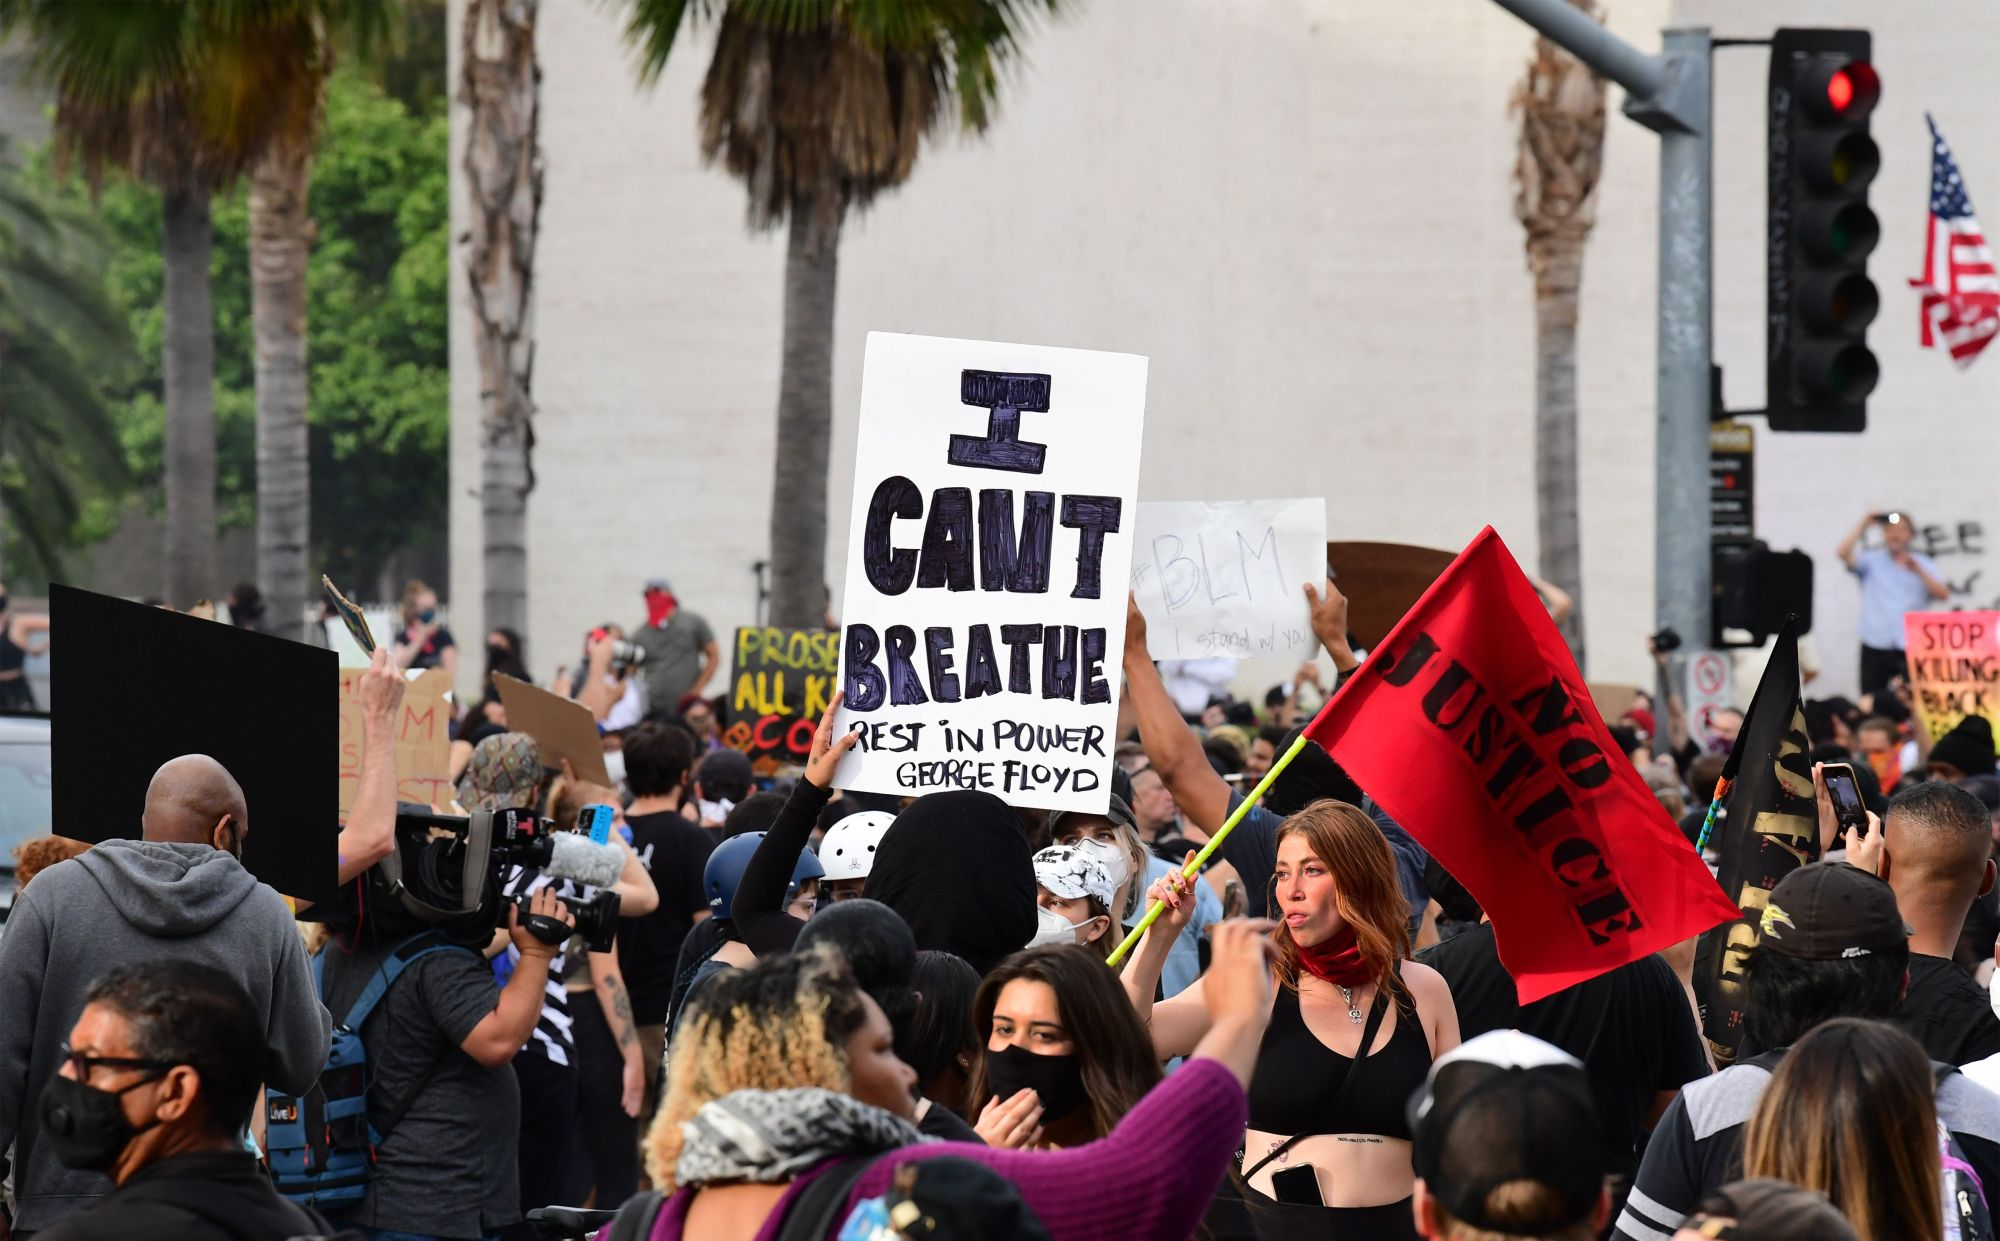 Protesters march through Hollywood during a demonstration over the death of George Floyd while in Minneapolis Police custody on June 2, 2020. (FREDERIC J. BROWN/AFP via Getty Images)